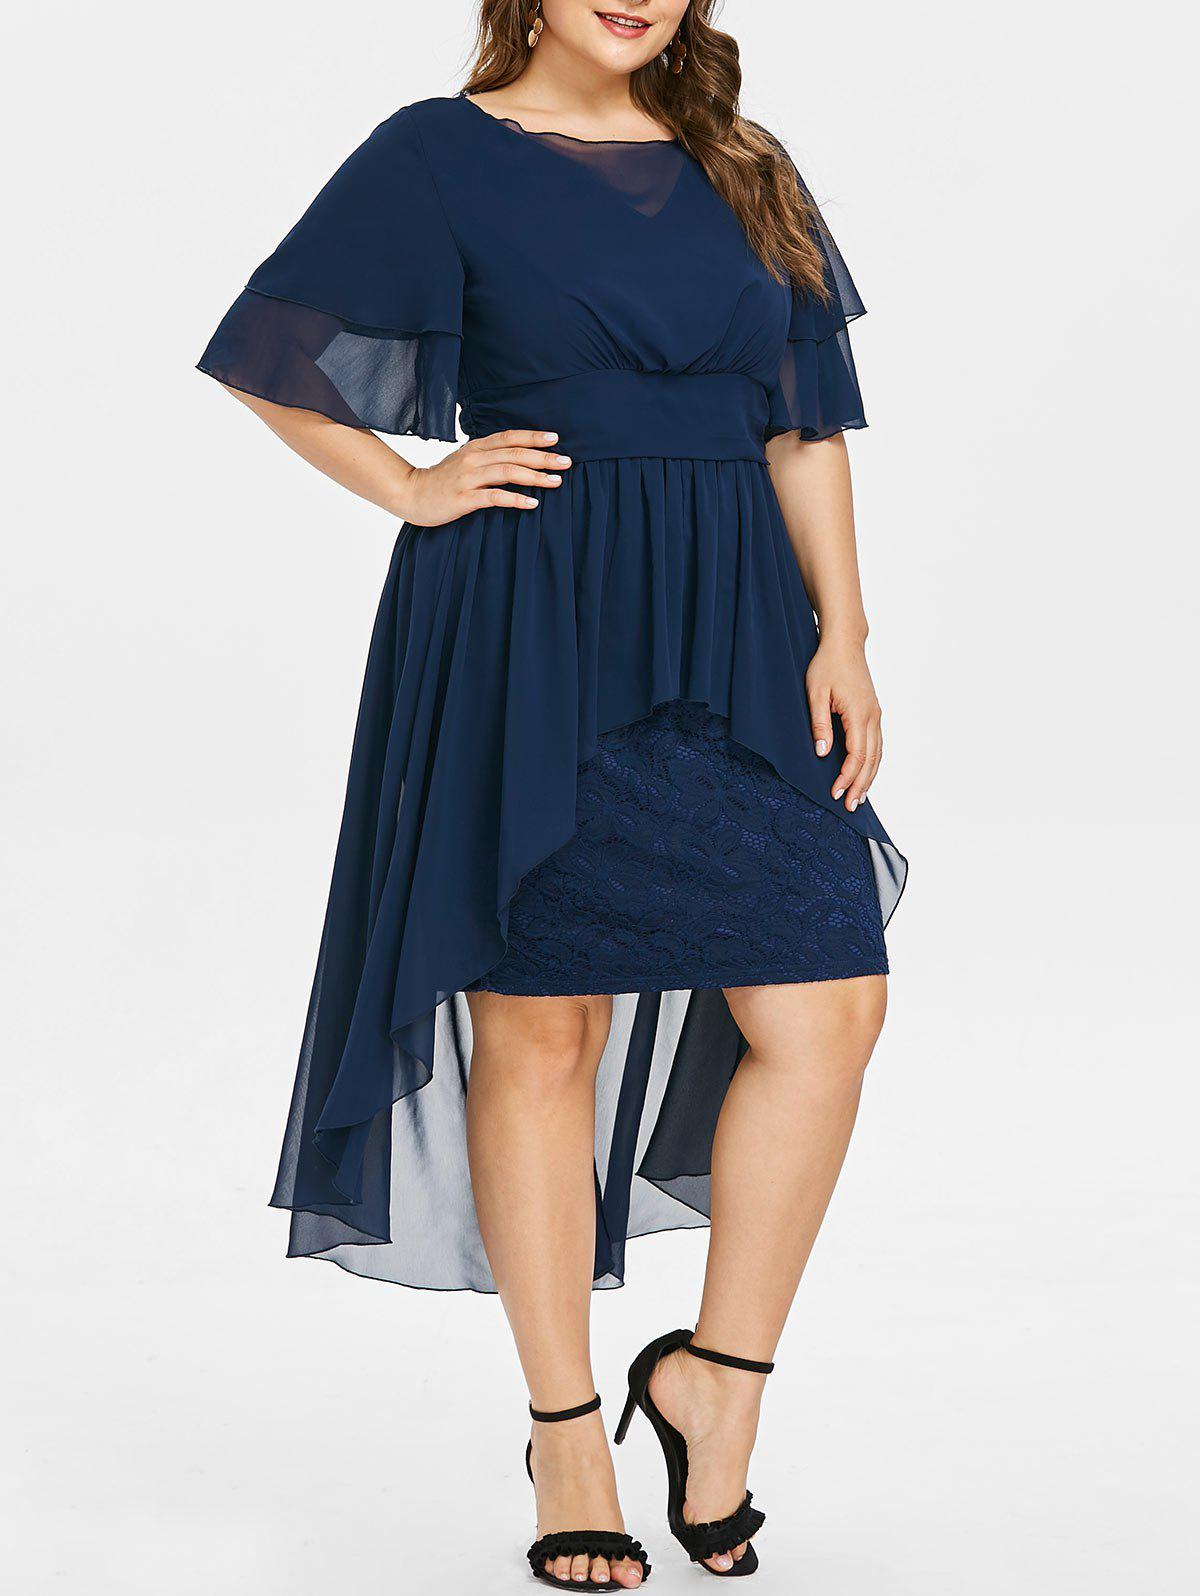 High Waist Plus Size Lace Insert Dress - MIDNIGHT BLUE L